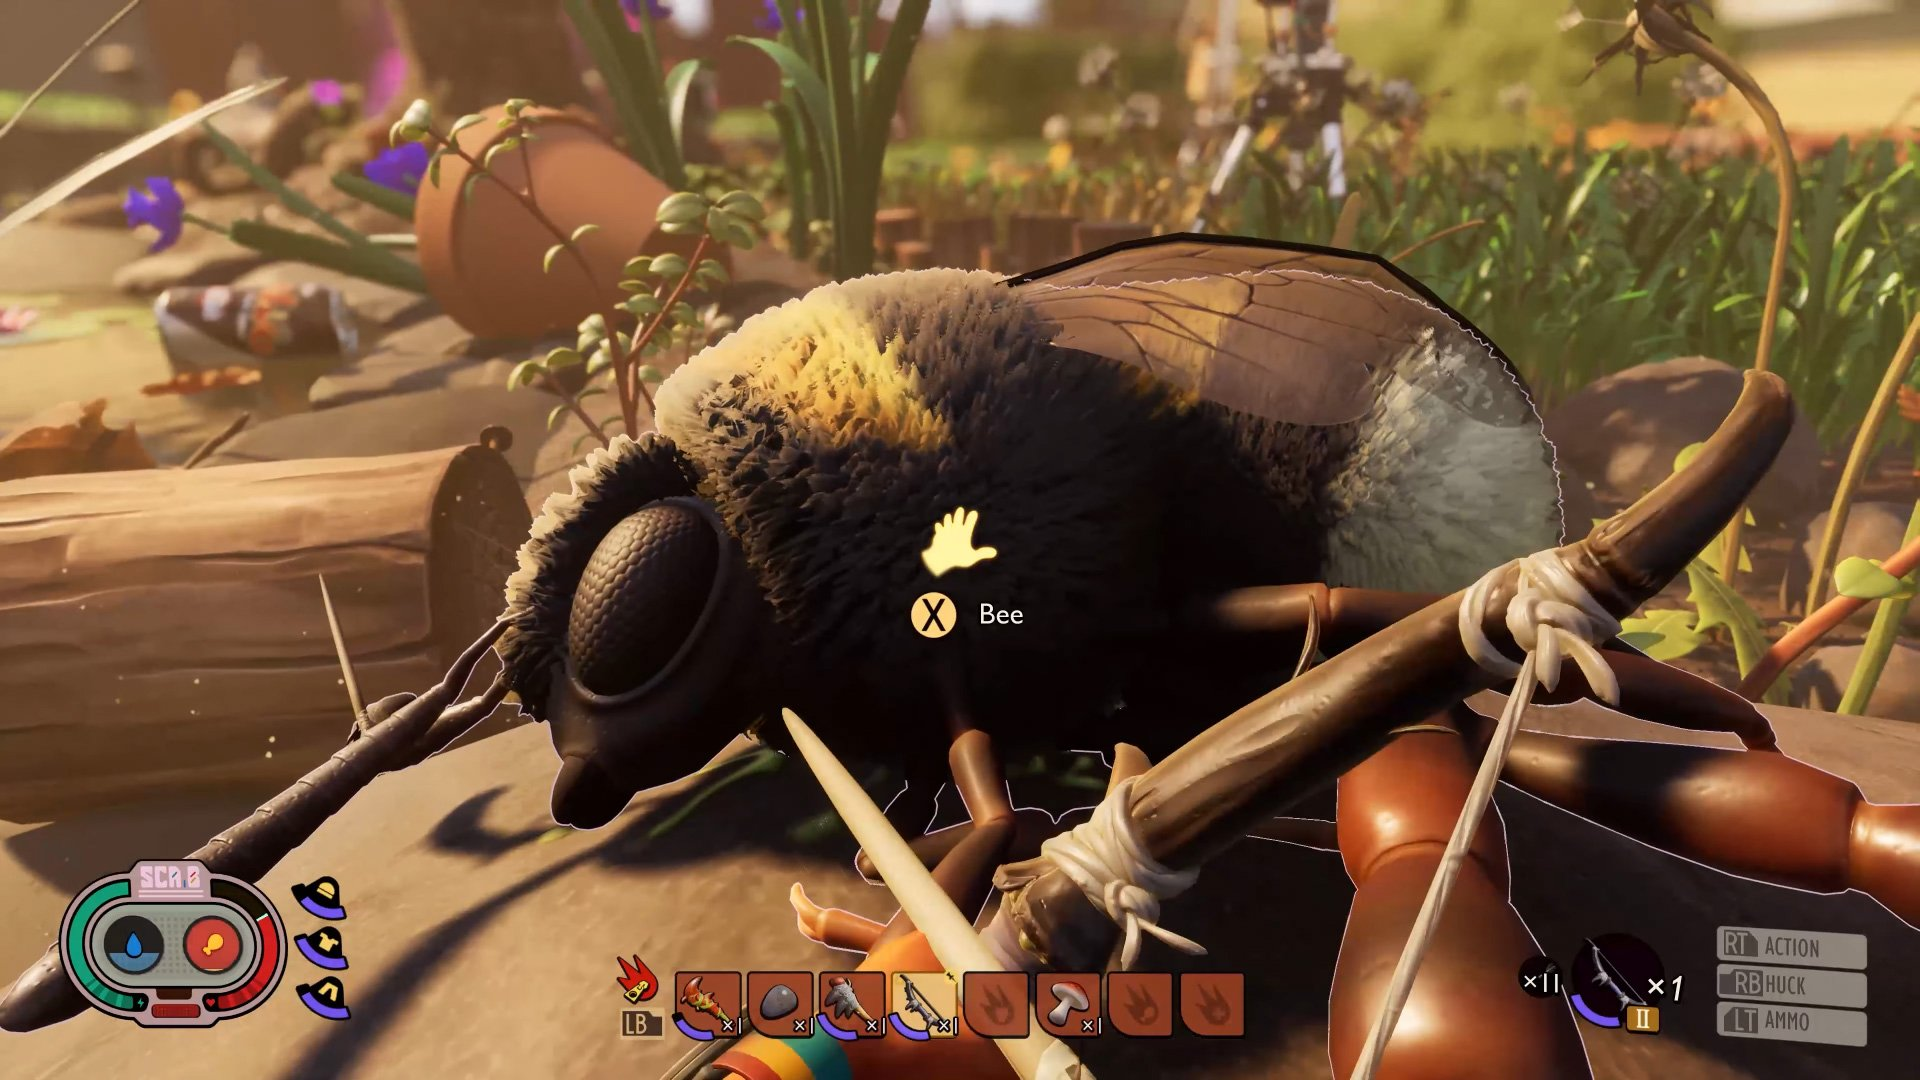 Grounded's new update lets you wage war against bees screenshot